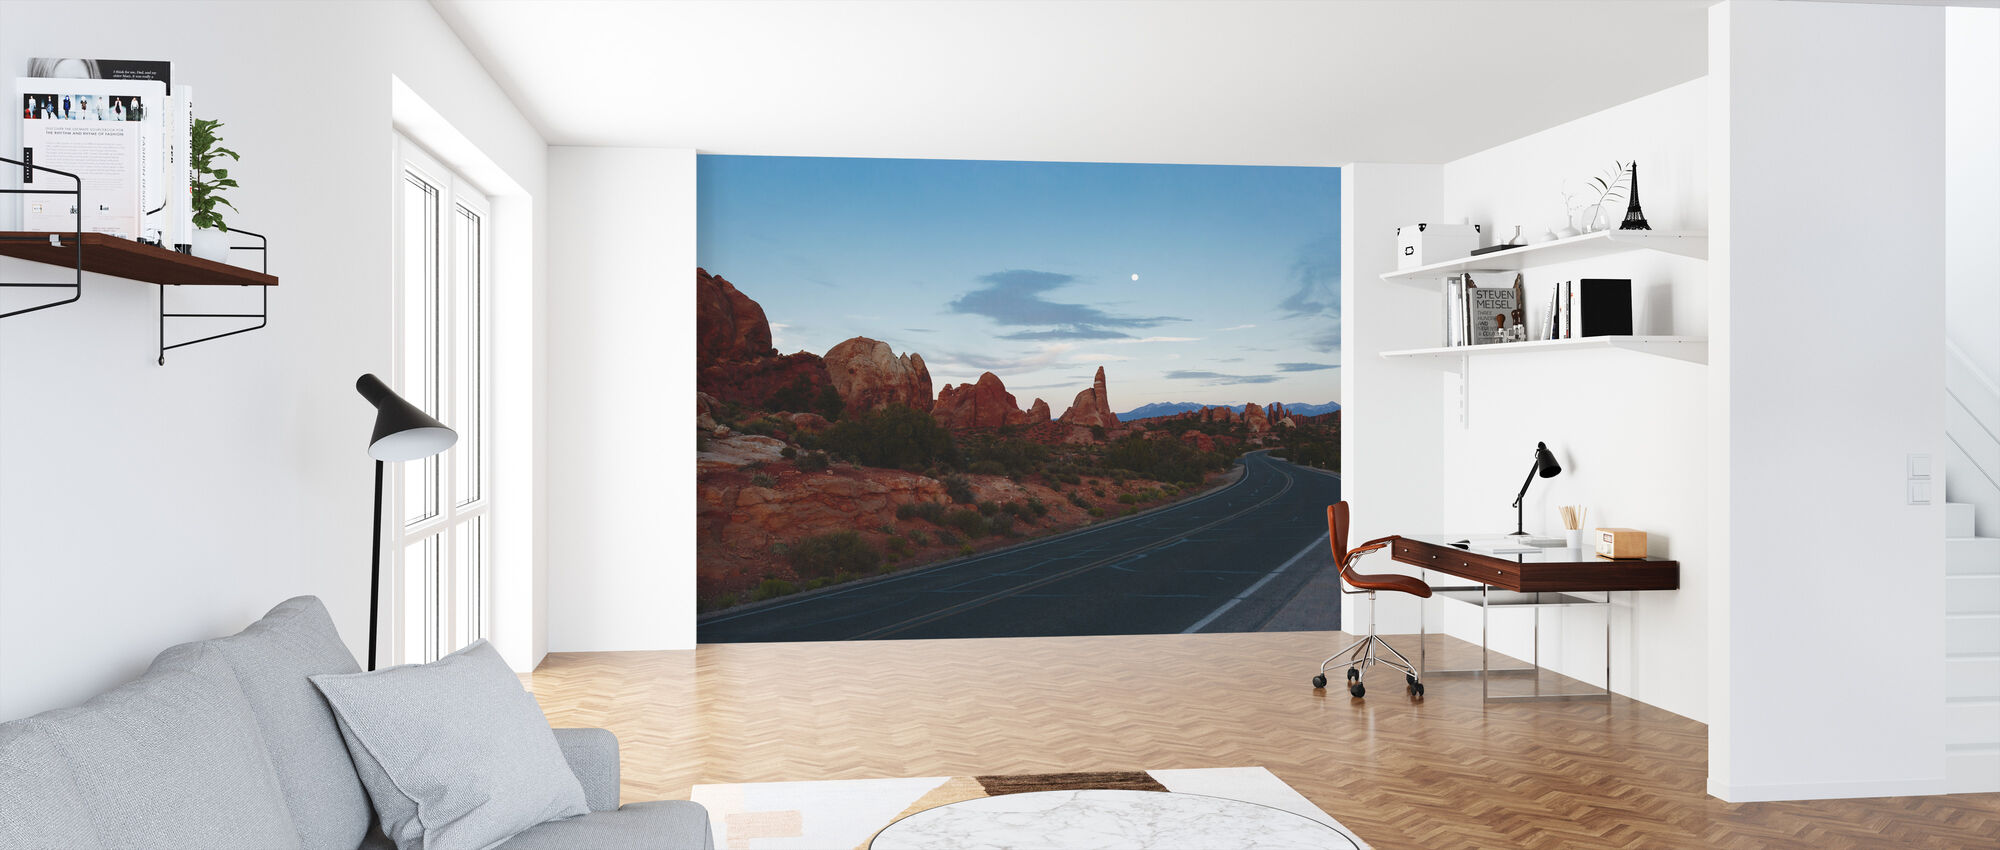 Road in Arches National Park - Wallpaper - Office